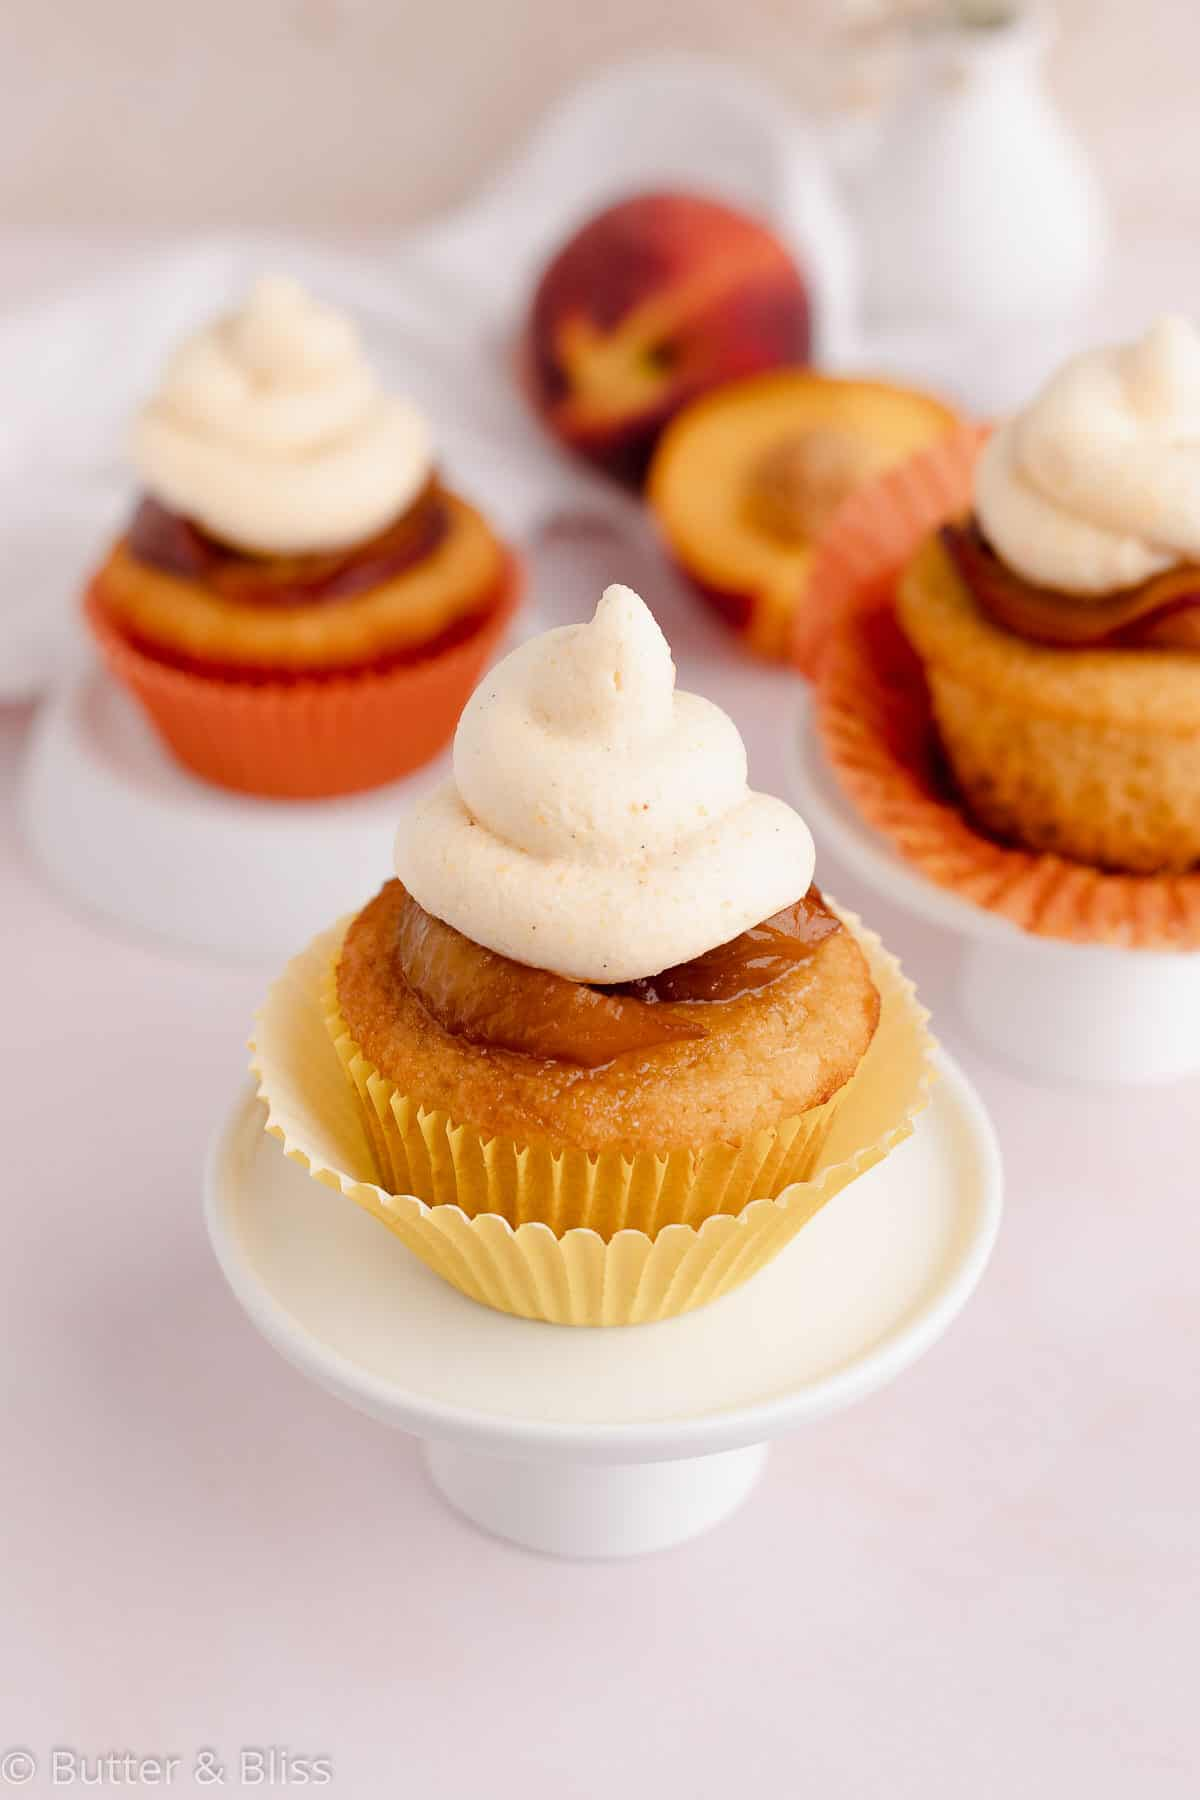 Small batch of peach cupcakes with peach frosting on a table